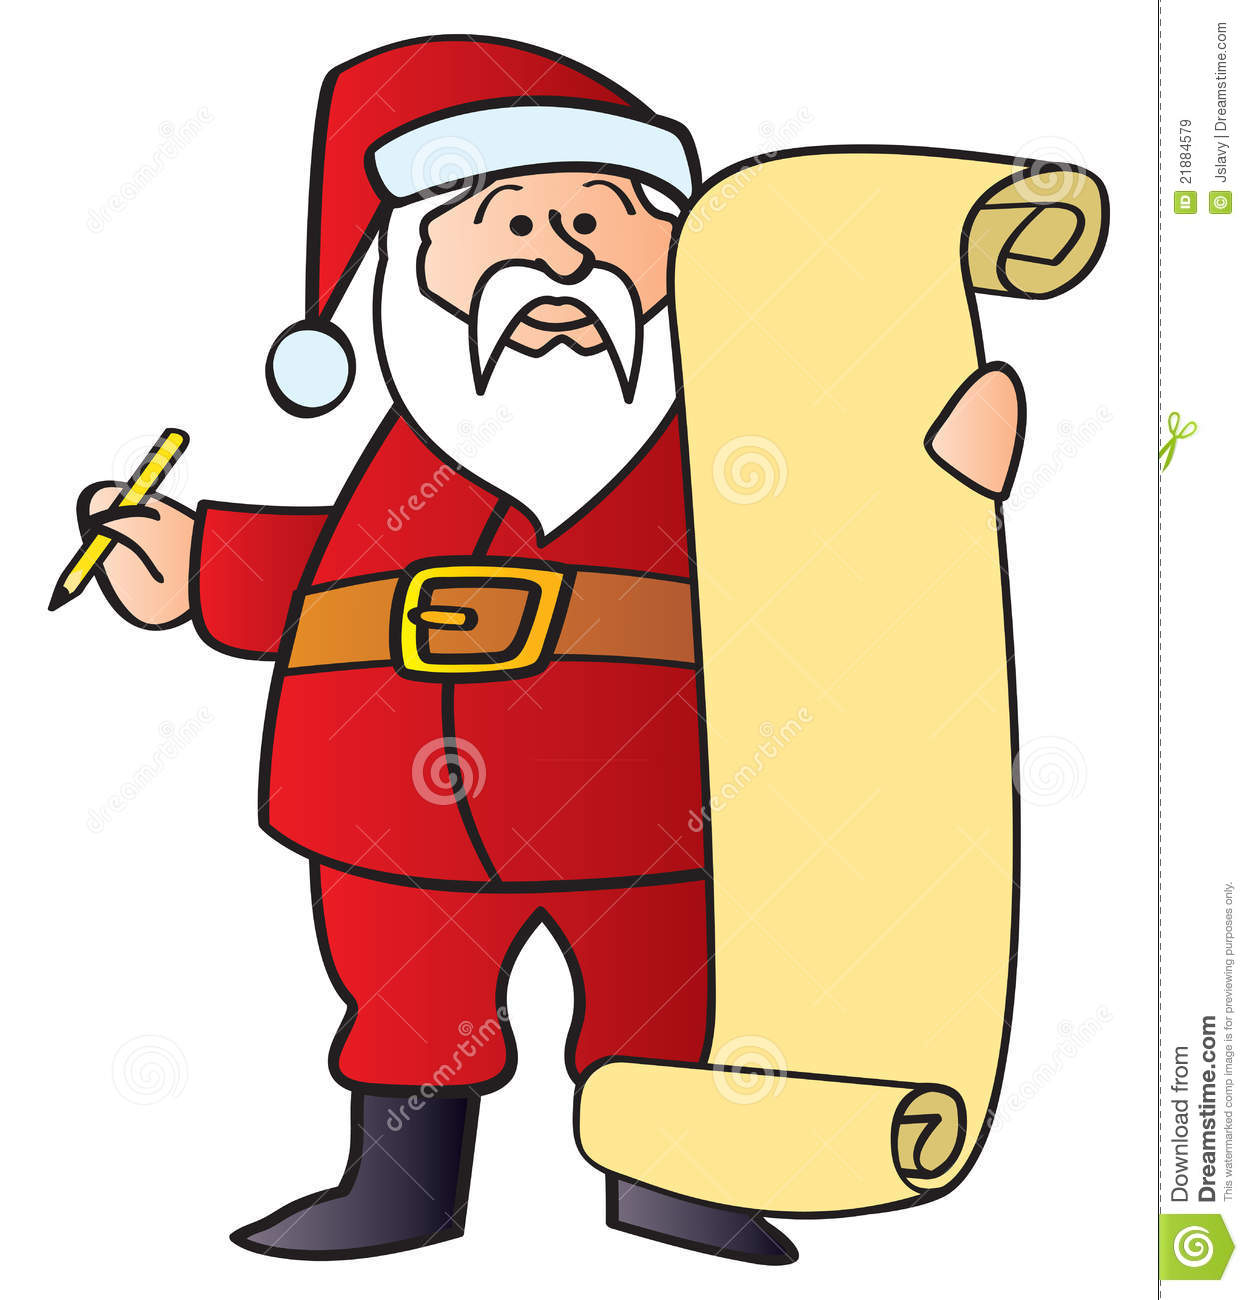 Santa With List Royalty Free Stock Images - Image: 21884579